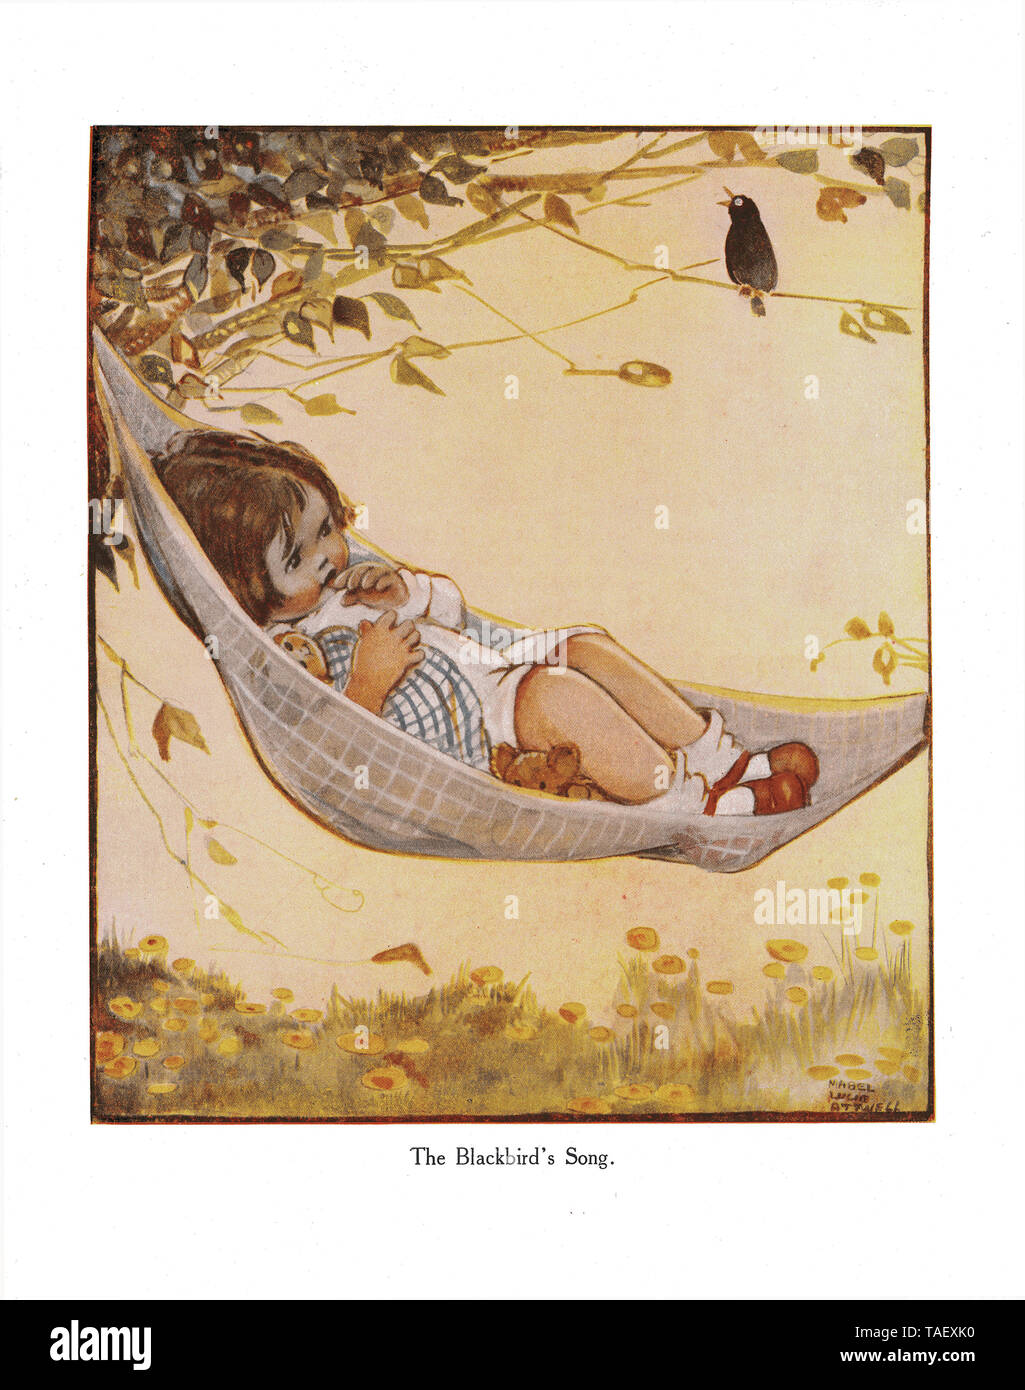 The Lucie Attwell Annual - 1922. Illustration from the rhyme 'The Blackbird's Song' in the first ever Lucie Attwell Annual of 1922 Stock Photo